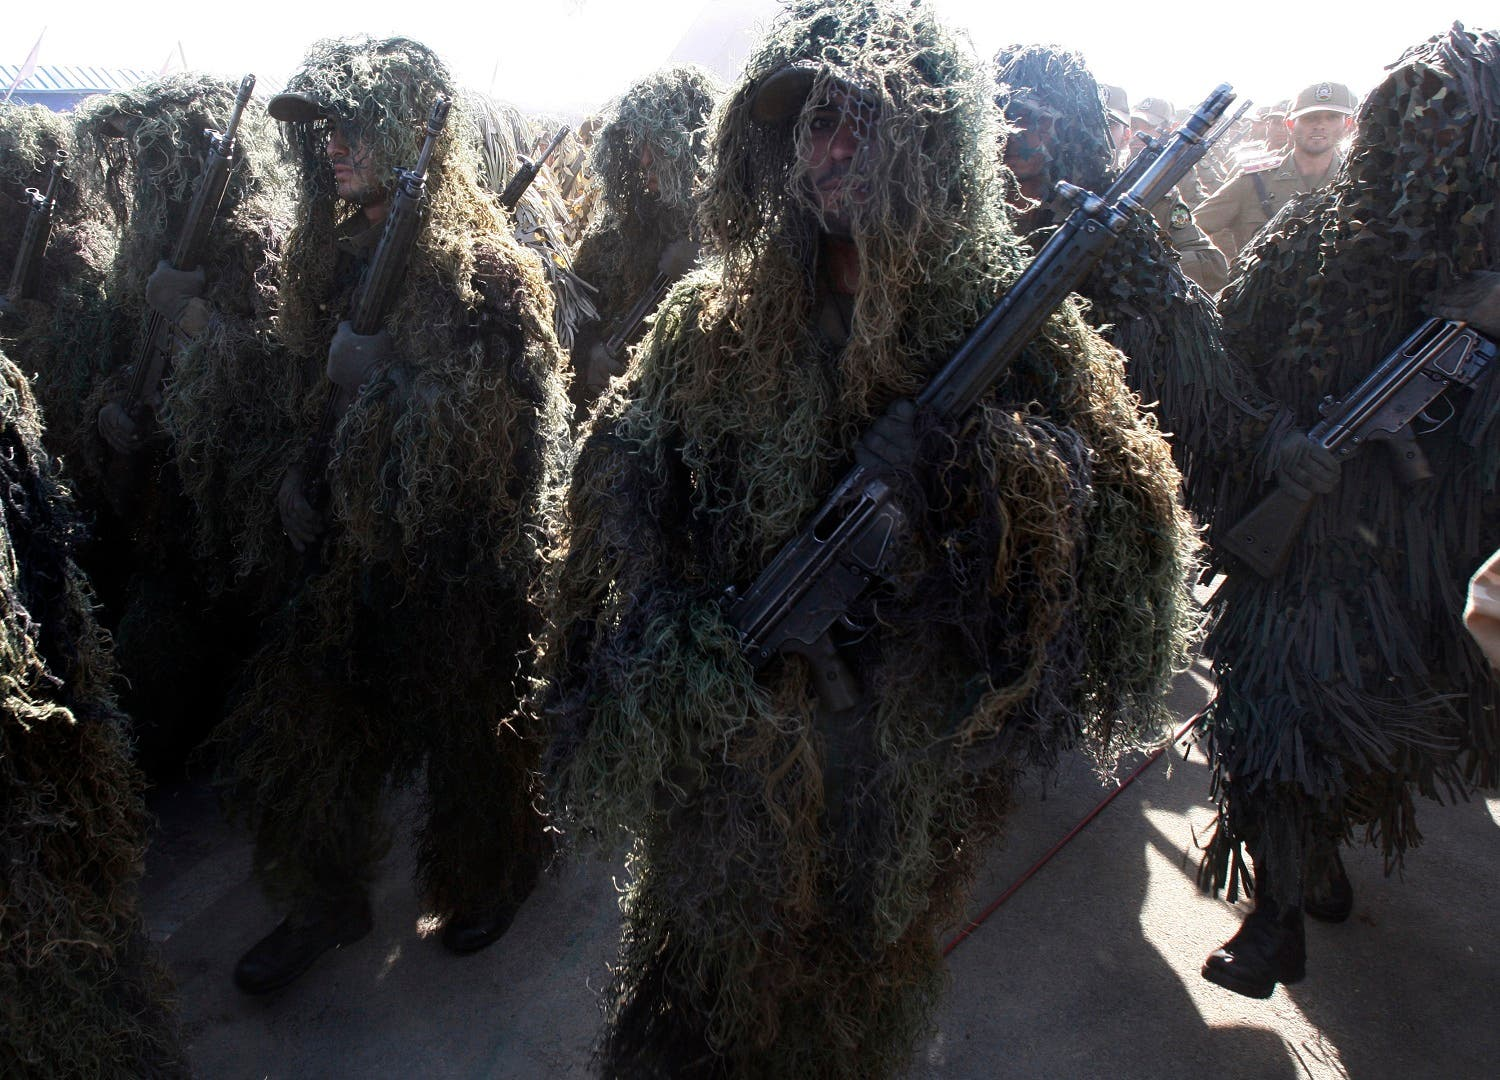 Wearing ghilli suits, Iranian army troops march during a parade marking the 30th anniversary of outset of the 1980-88 Iran-Iraq war, just outside Tehran, on Sept. 22, 2010. (AP)